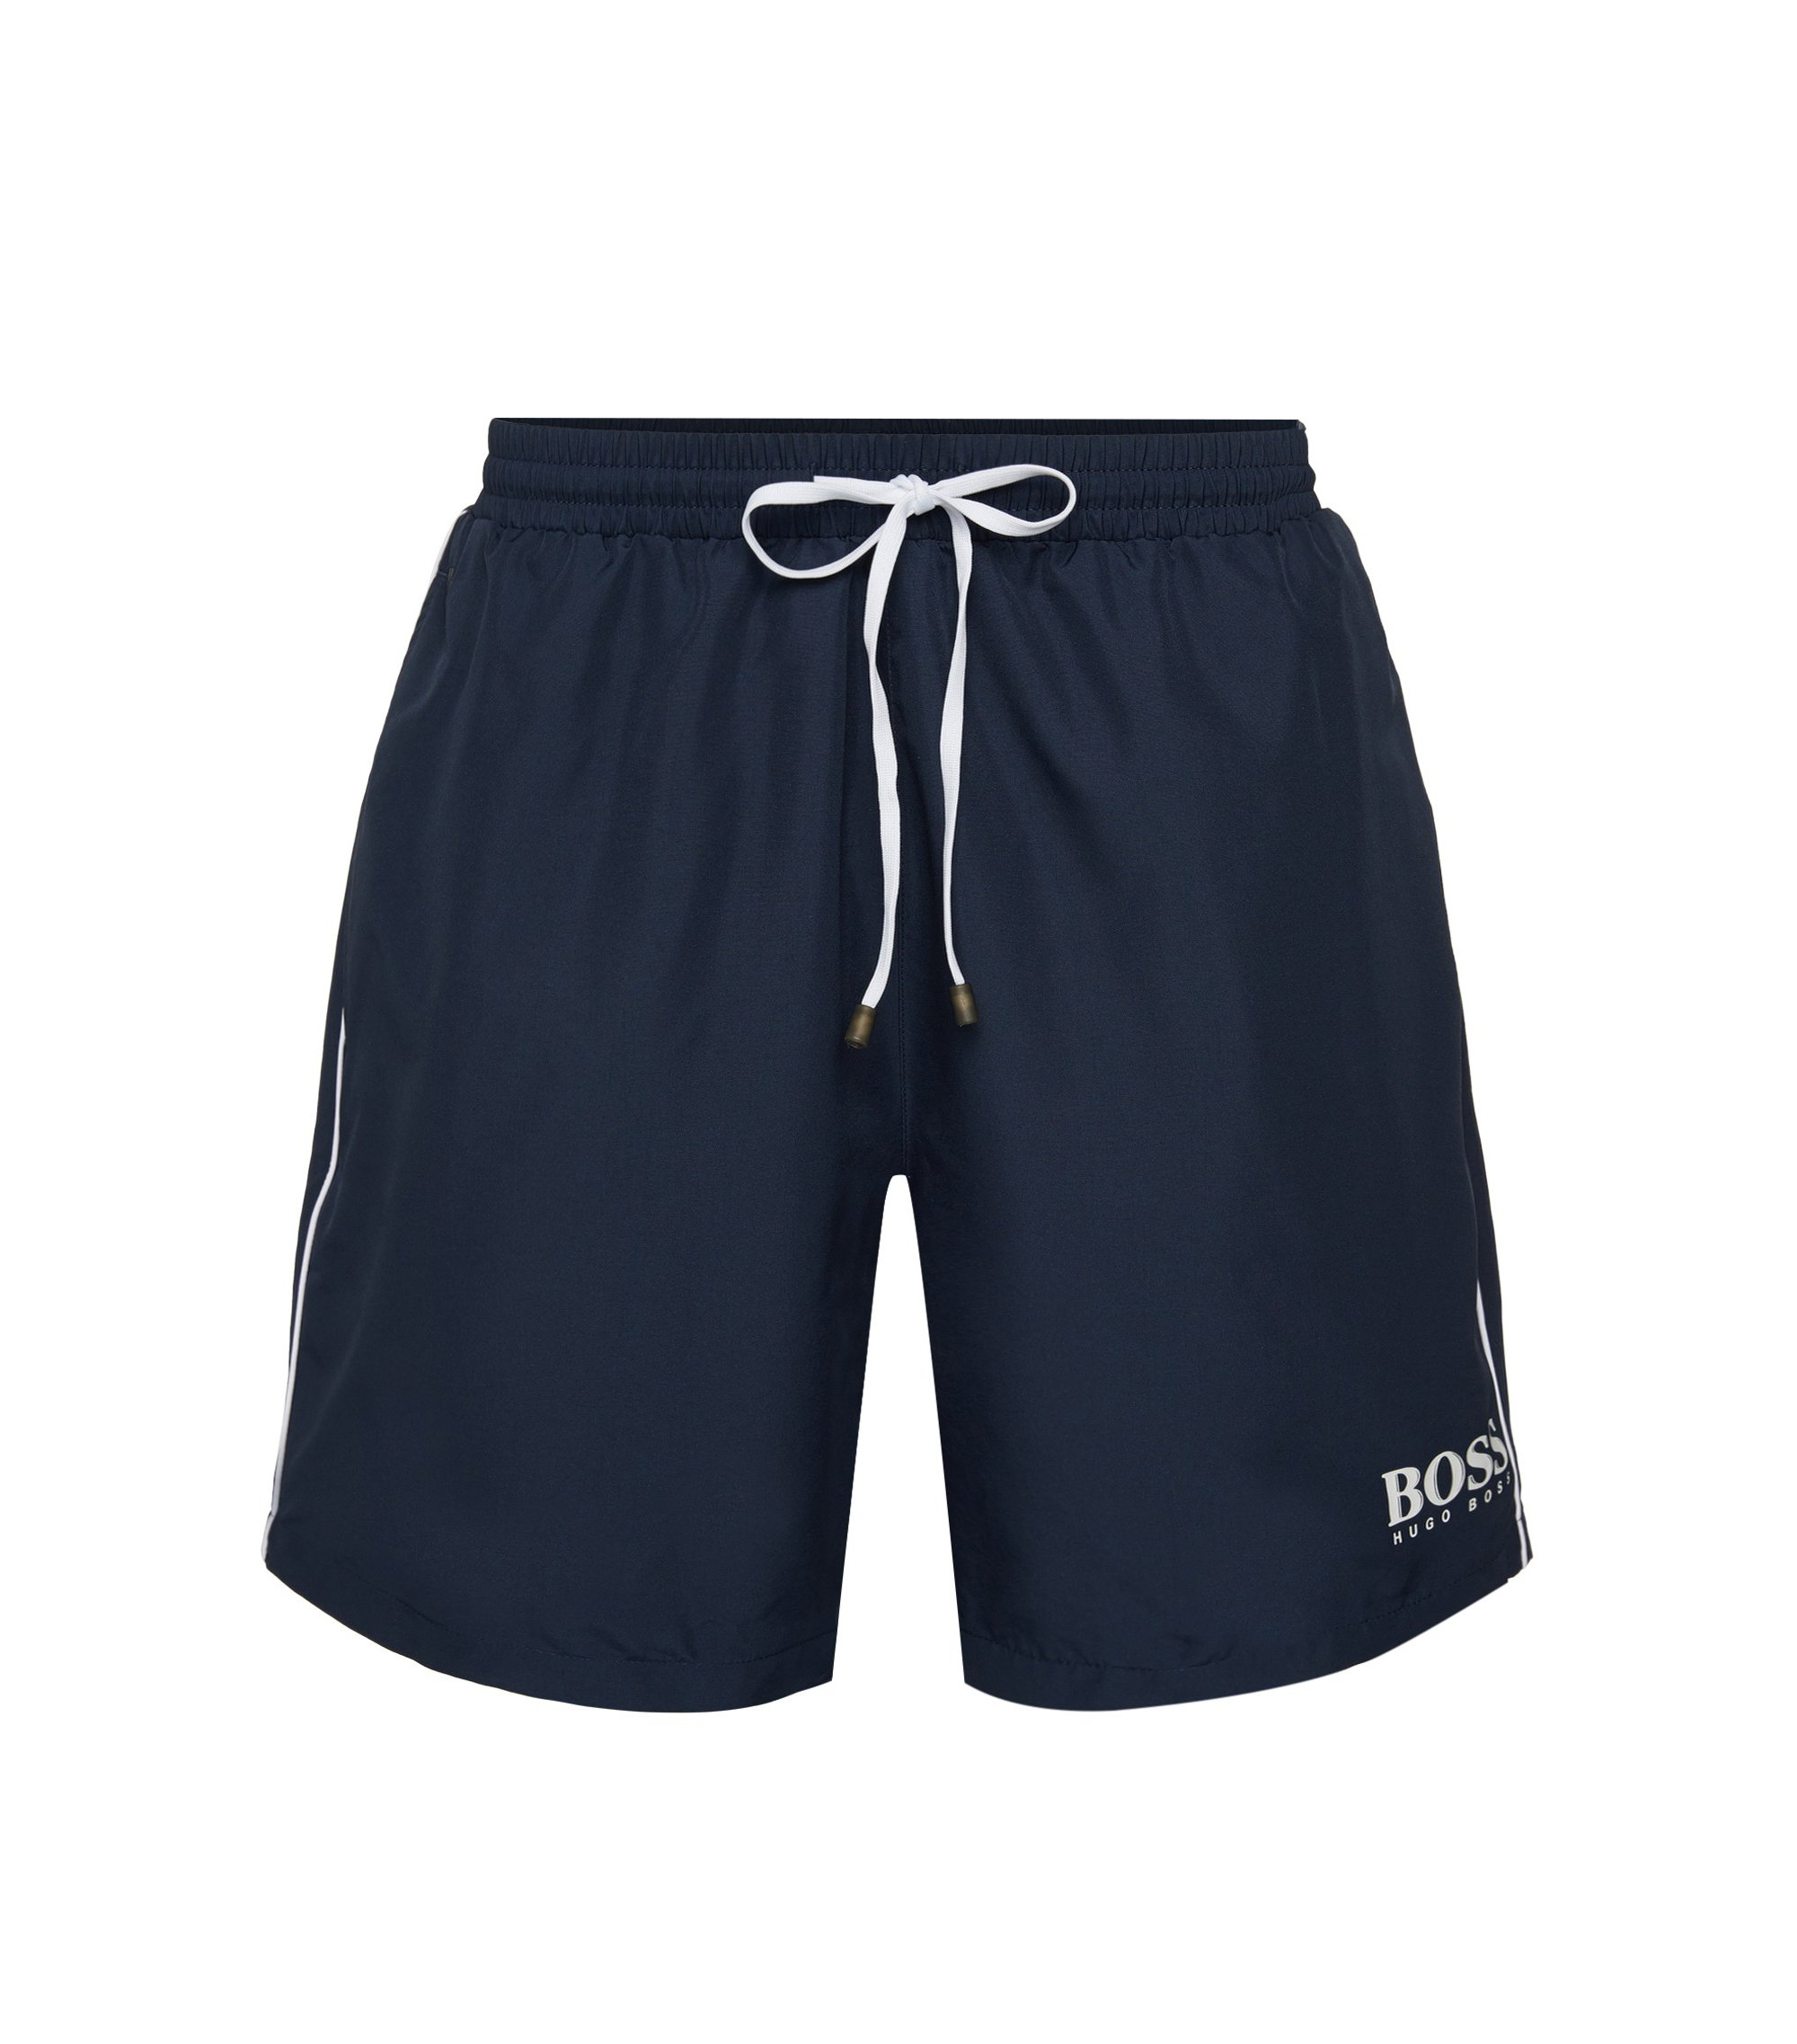 Drawstring swim shorts with logo detail, Dark Blue